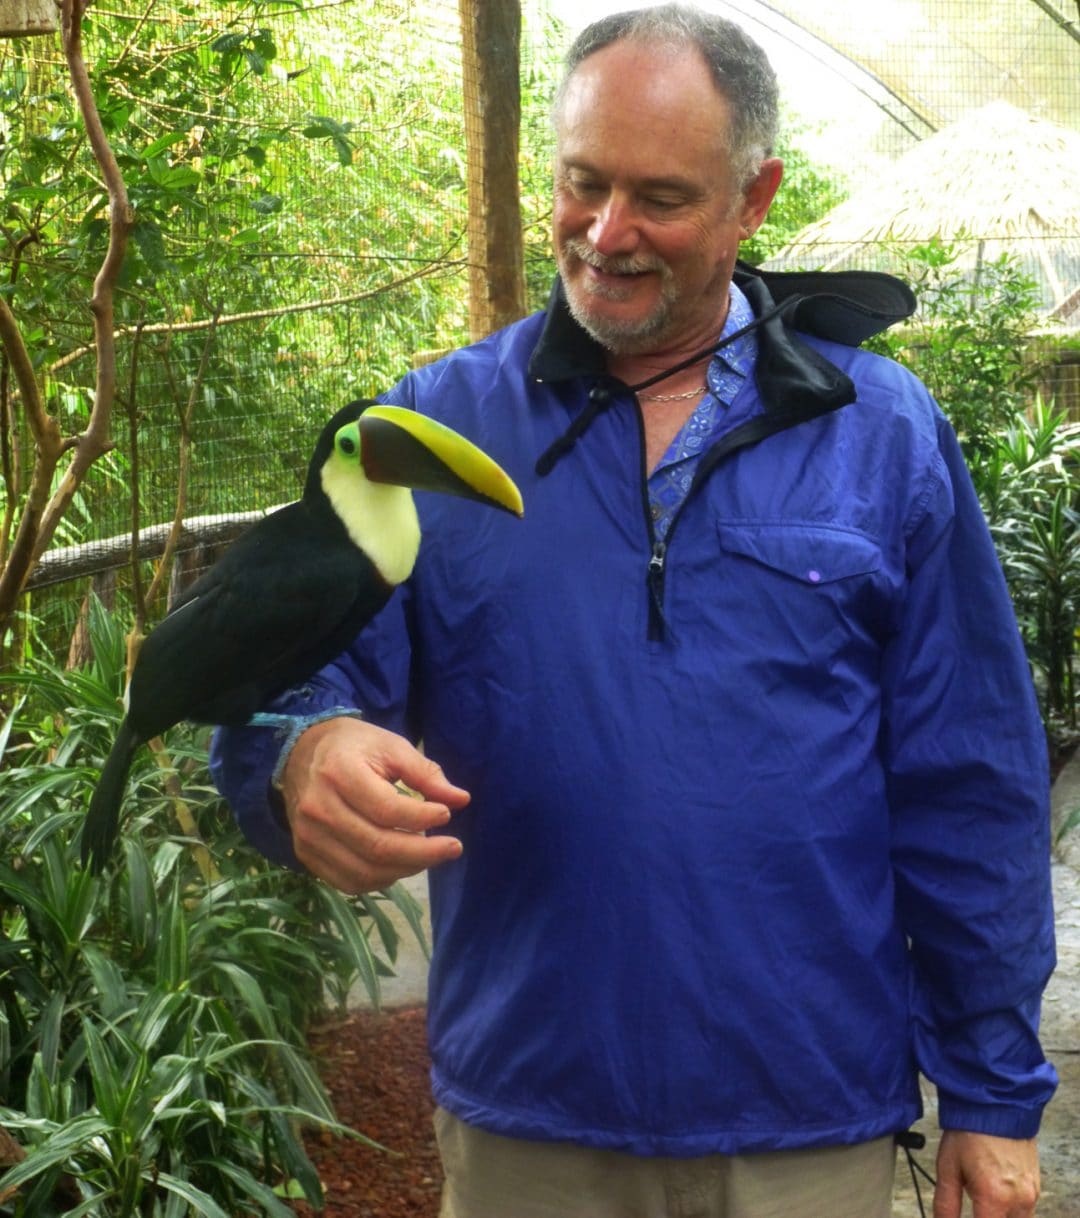 Toucan and Neil in La Paz Waterfall Gardens, Costa Rica